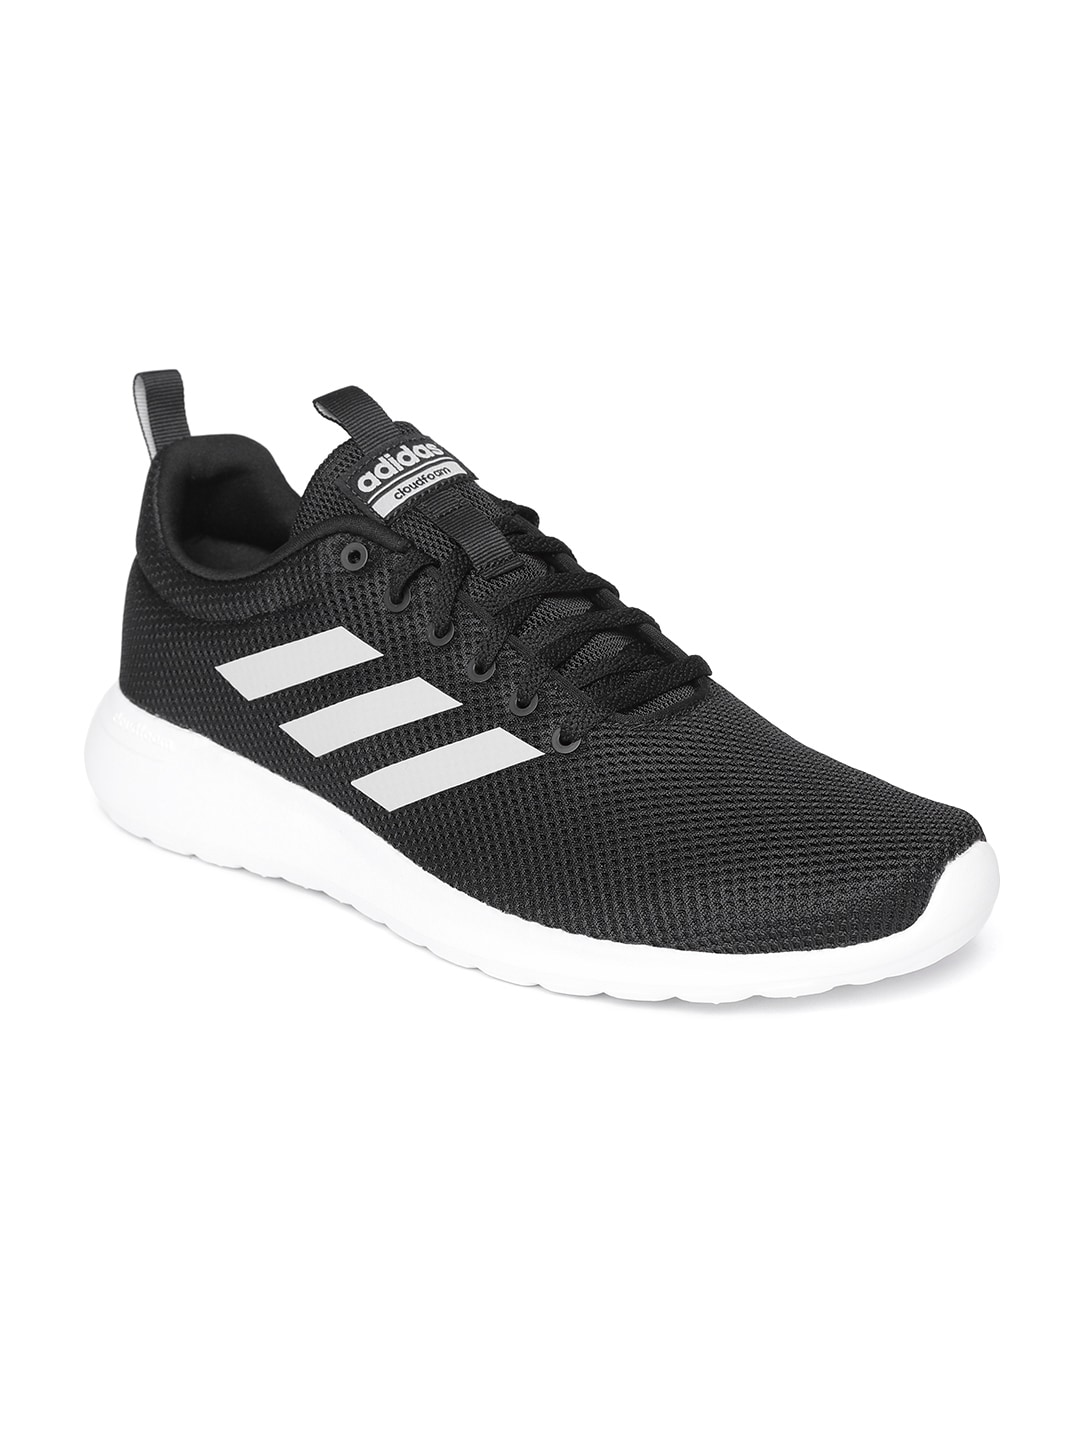 meet a5f37 0d949 Adidas Racer - Buy Adidas Racer online in India